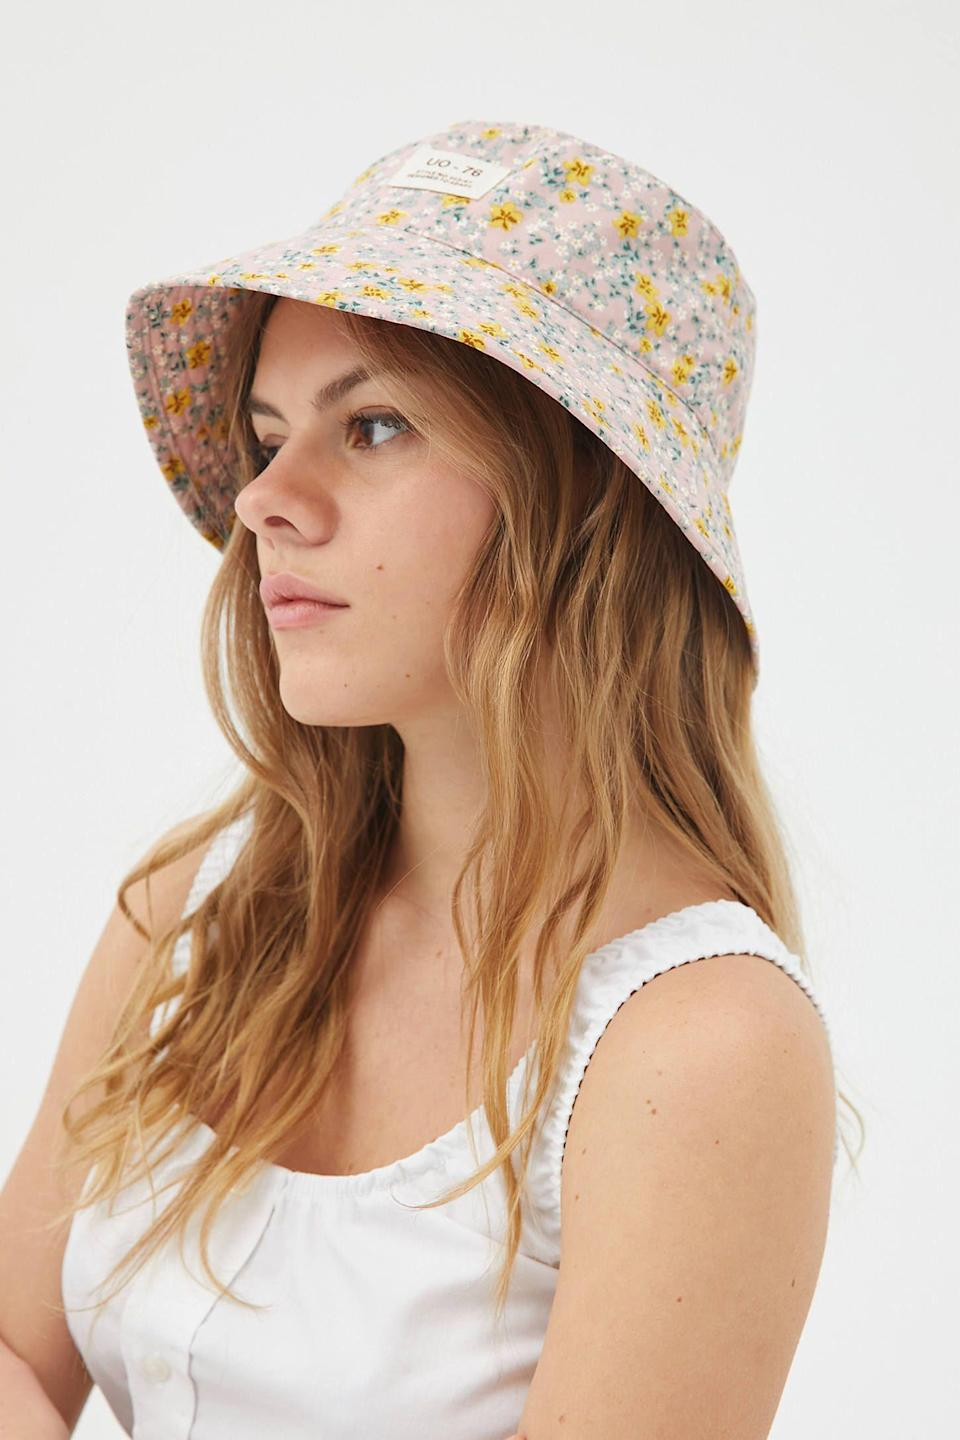 """<p><strong>Urban Outfitters</strong></p><p>urbanoutfitters.com</p><p><strong>$24.00</strong></p><p><a href=""""https://go.redirectingat.com?id=74968X1596630&url=https%3A%2F%2Fwww.urbanoutfitters.com%2Fshop%2Fuo-pixie-printed-bucket-hat&sref=https%3A%2F%2Fwww.womenshealthmag.com%2Flife%2Fg33503014%2Fsecret-santa-gifts%2F"""" rel=""""nofollow noopener"""" target=""""_blank"""" data-ylk=""""slk:Shop Now"""" class=""""link rapid-noclick-resp"""">Shop Now</a></p><p>A cute floral bucket hat is a stylish gift any friend will love. This one comes in a pretty pink or a bold navy, so you can grab the one that will match the rest of her closet!</p>"""